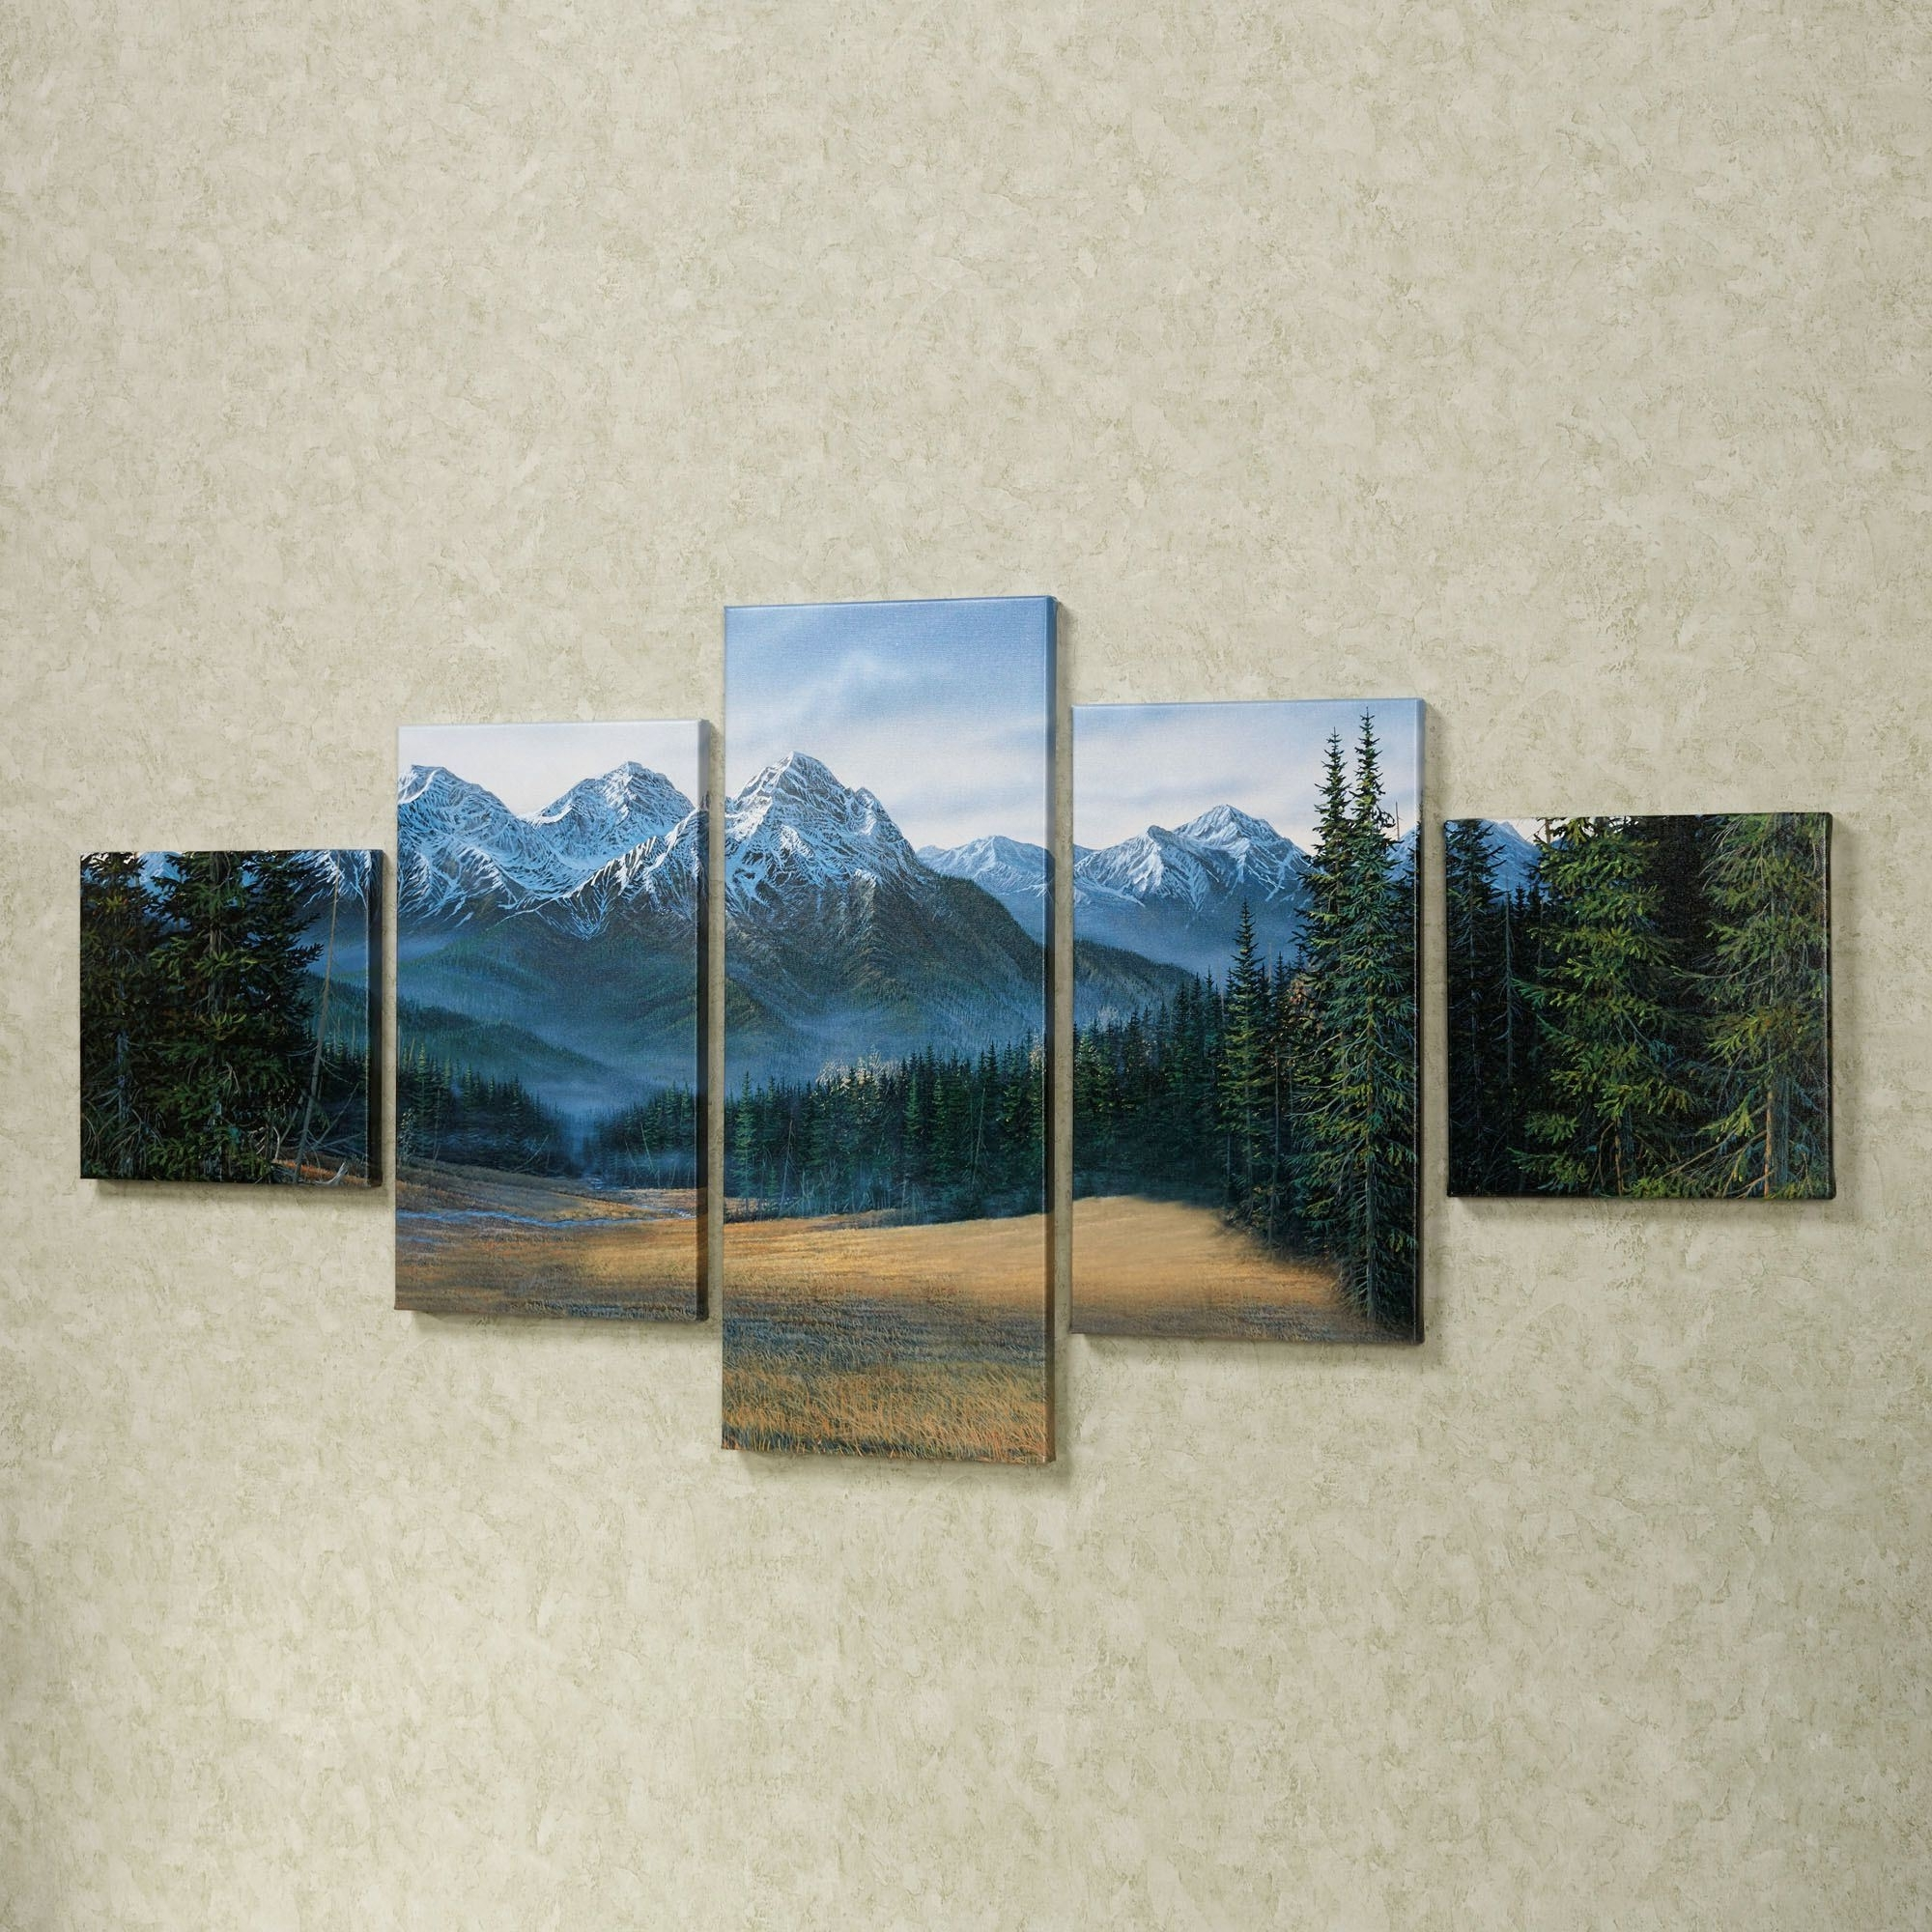 Rocky Mountain 5 Pc Canvas Wall Art Set With Most Recent Mountains Canvas Wall Art (Gallery 1 of 15)